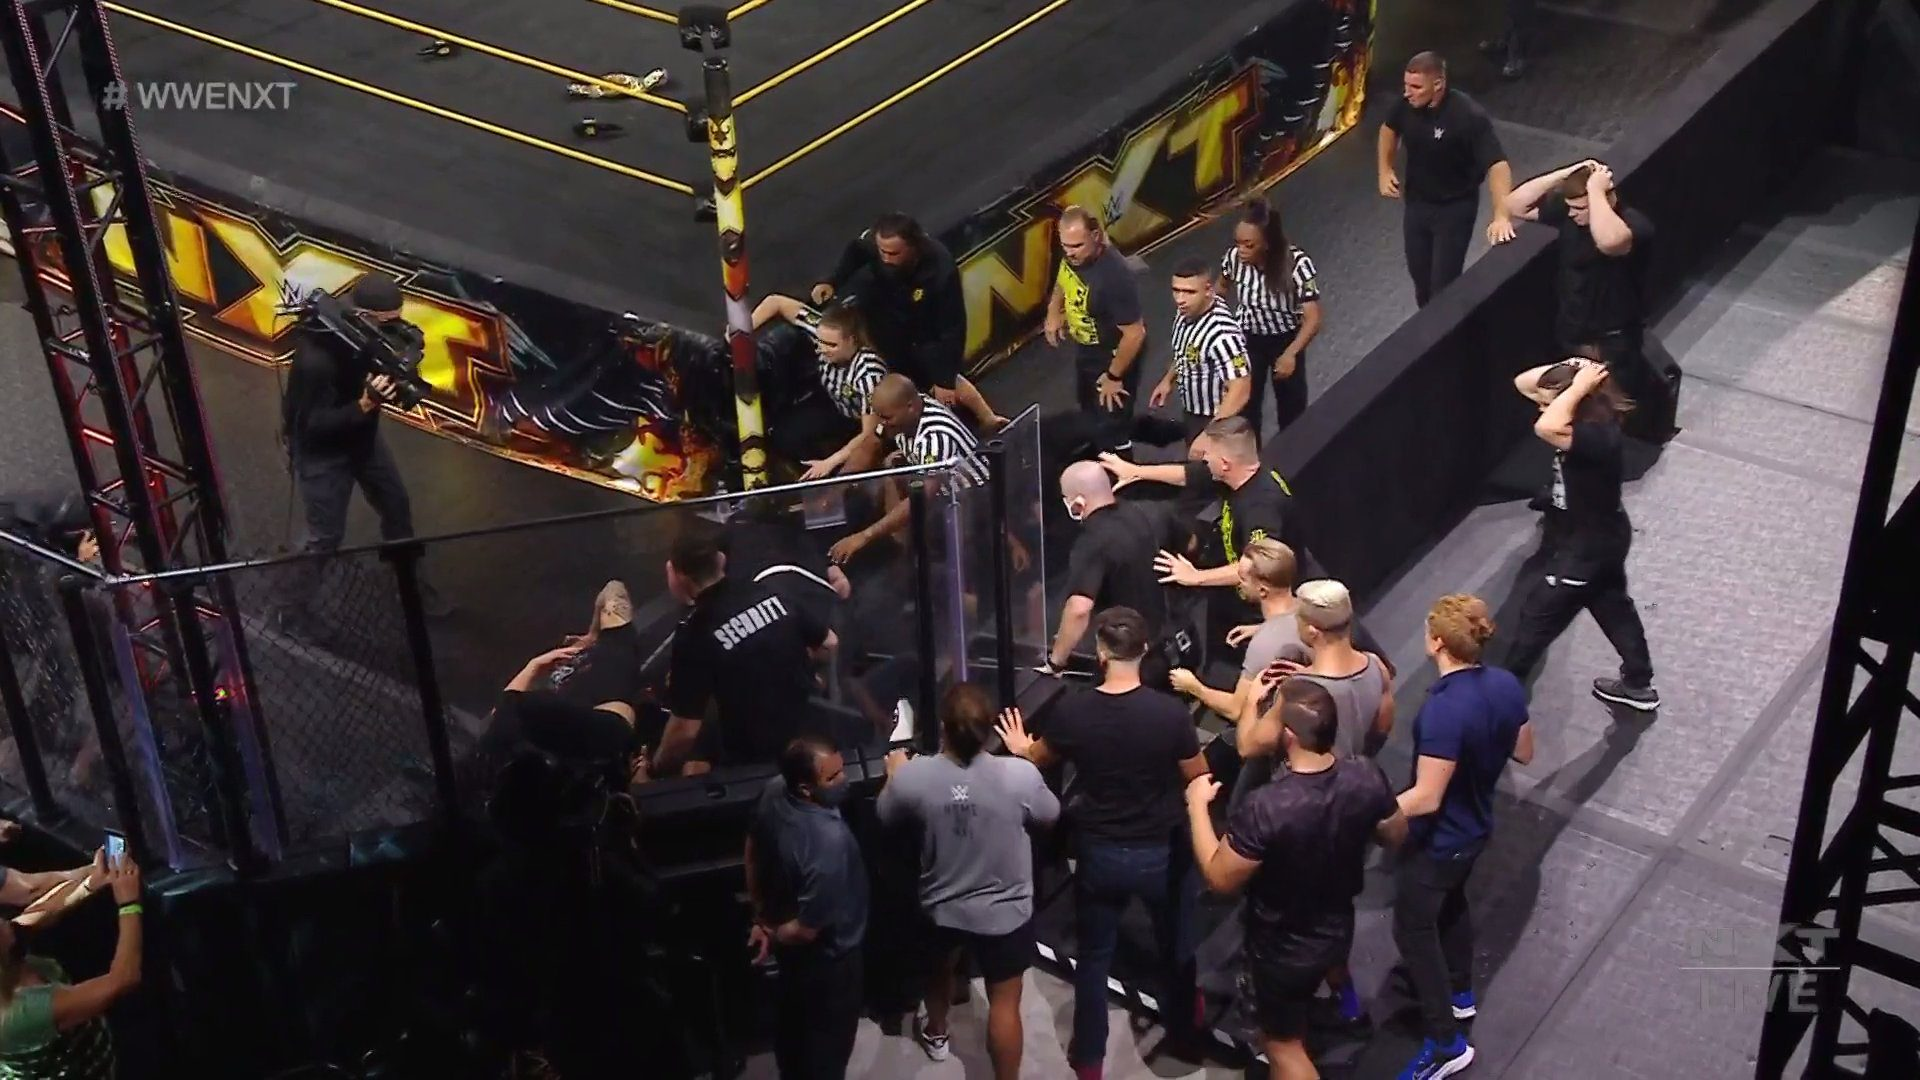 WWE NXT Results – Takeover 36 Go-Home Show, Mixed Tag Team Match, WALTER, More